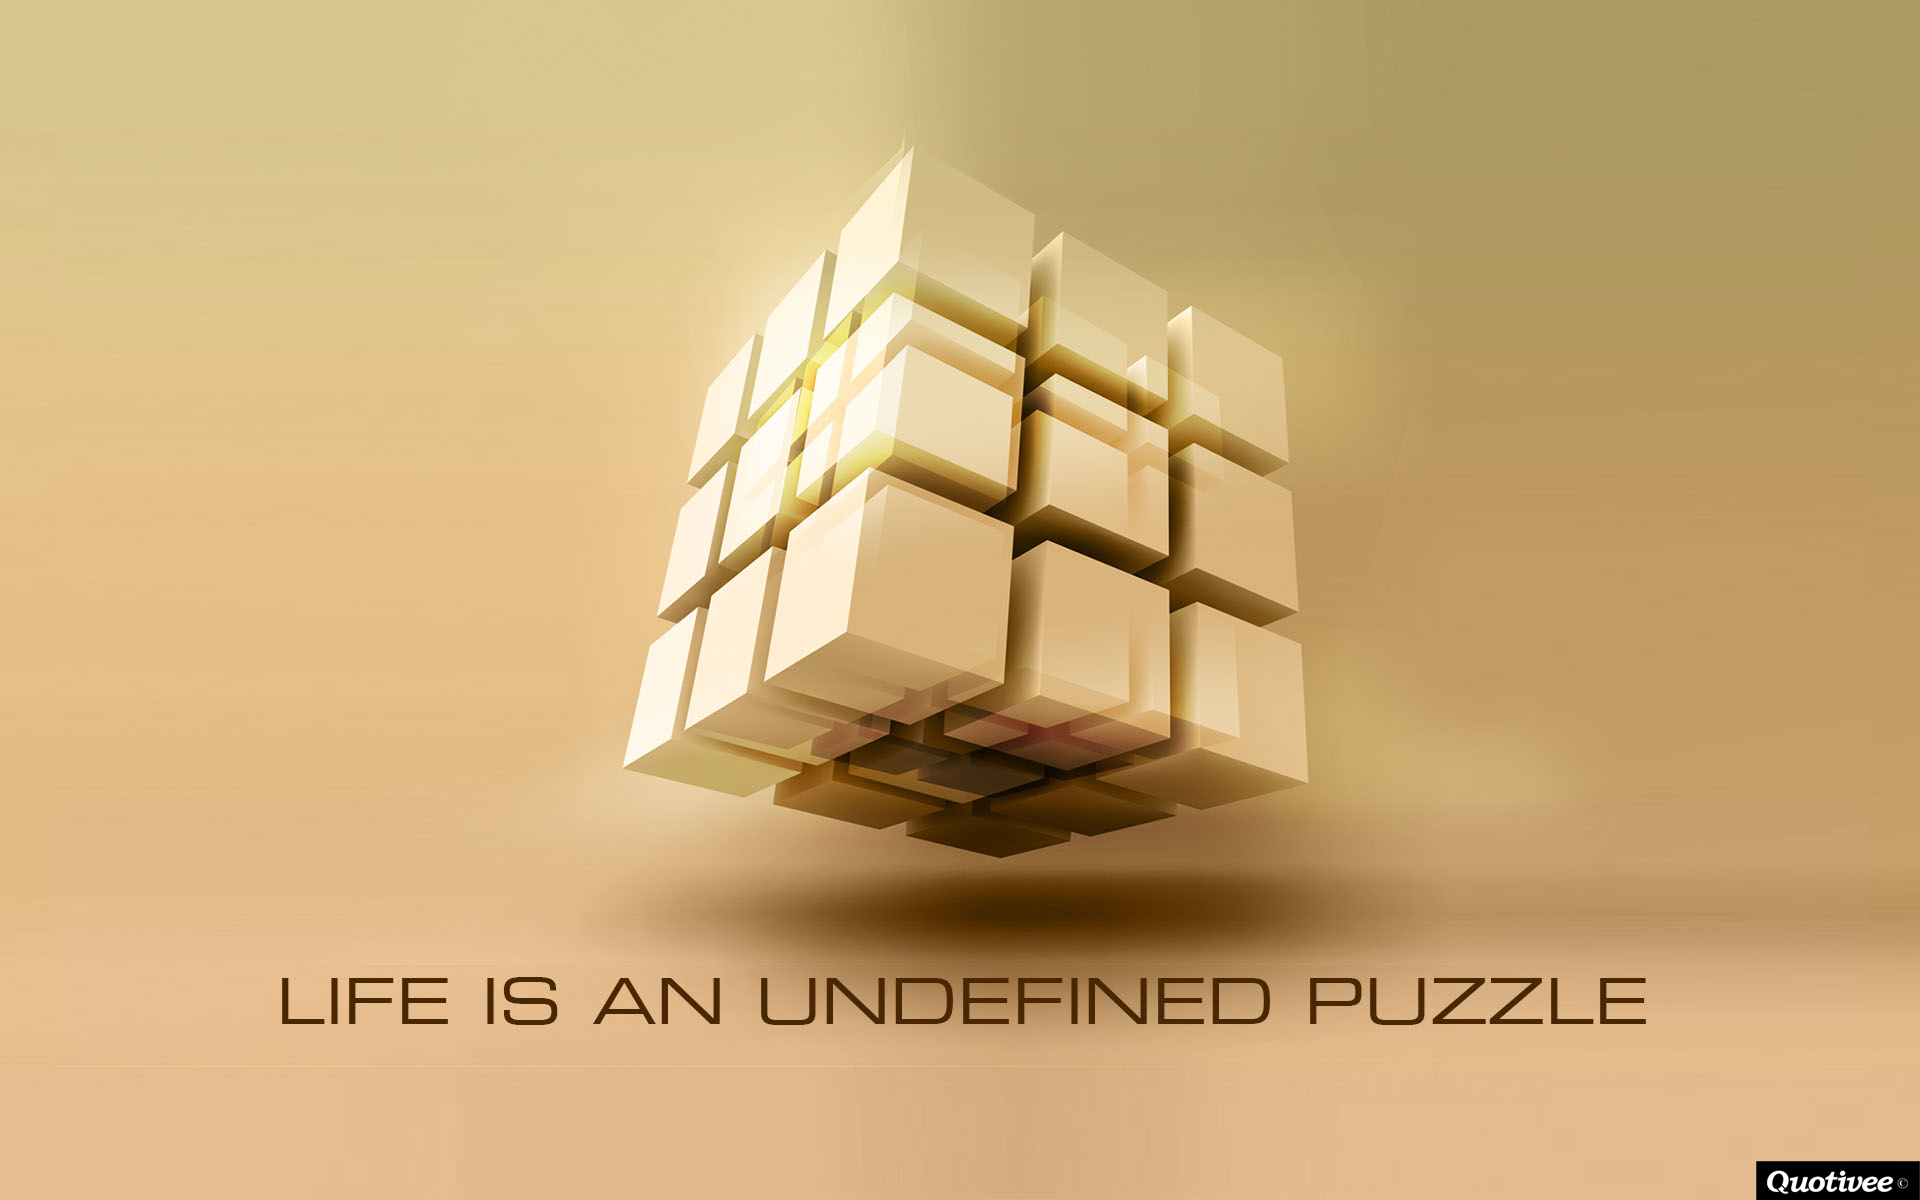 Mad Men Wallpaper Quote Life Is An Undefined Puzzle Inspirational Quotes Quotivee